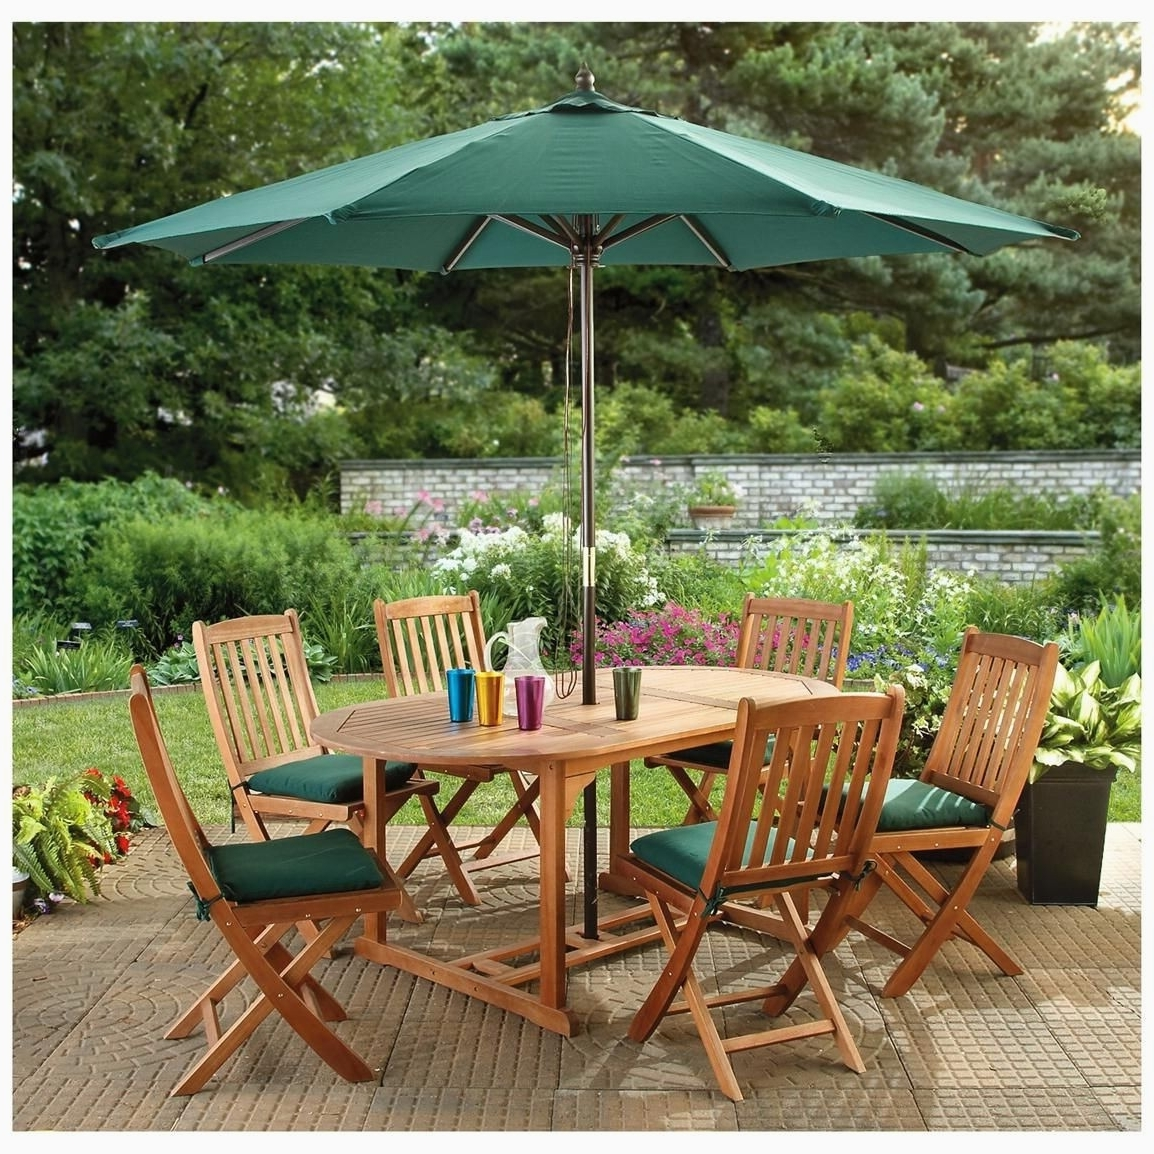 Outdoor Dining Table With Umbrella Hole Awesome Fantastic Patio For Popular Patio Tables With Umbrella Hole (View 10 of 20)